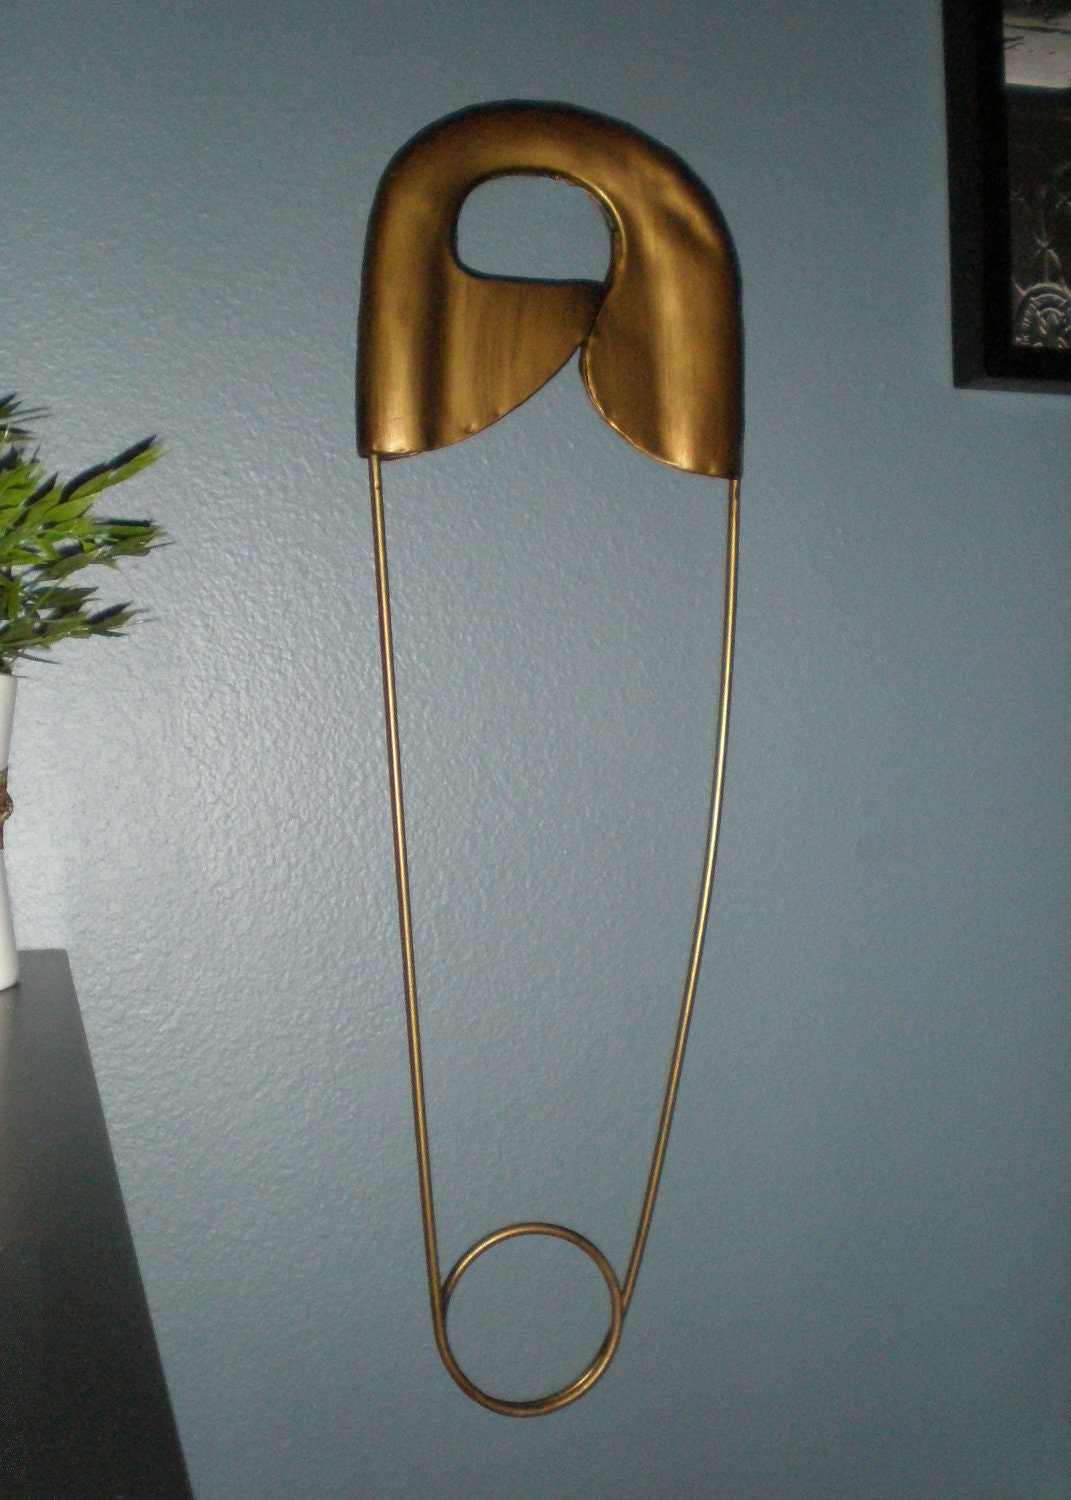 Giant Vintage Safety Pin Metal Wall Decor By Kellzstuff On